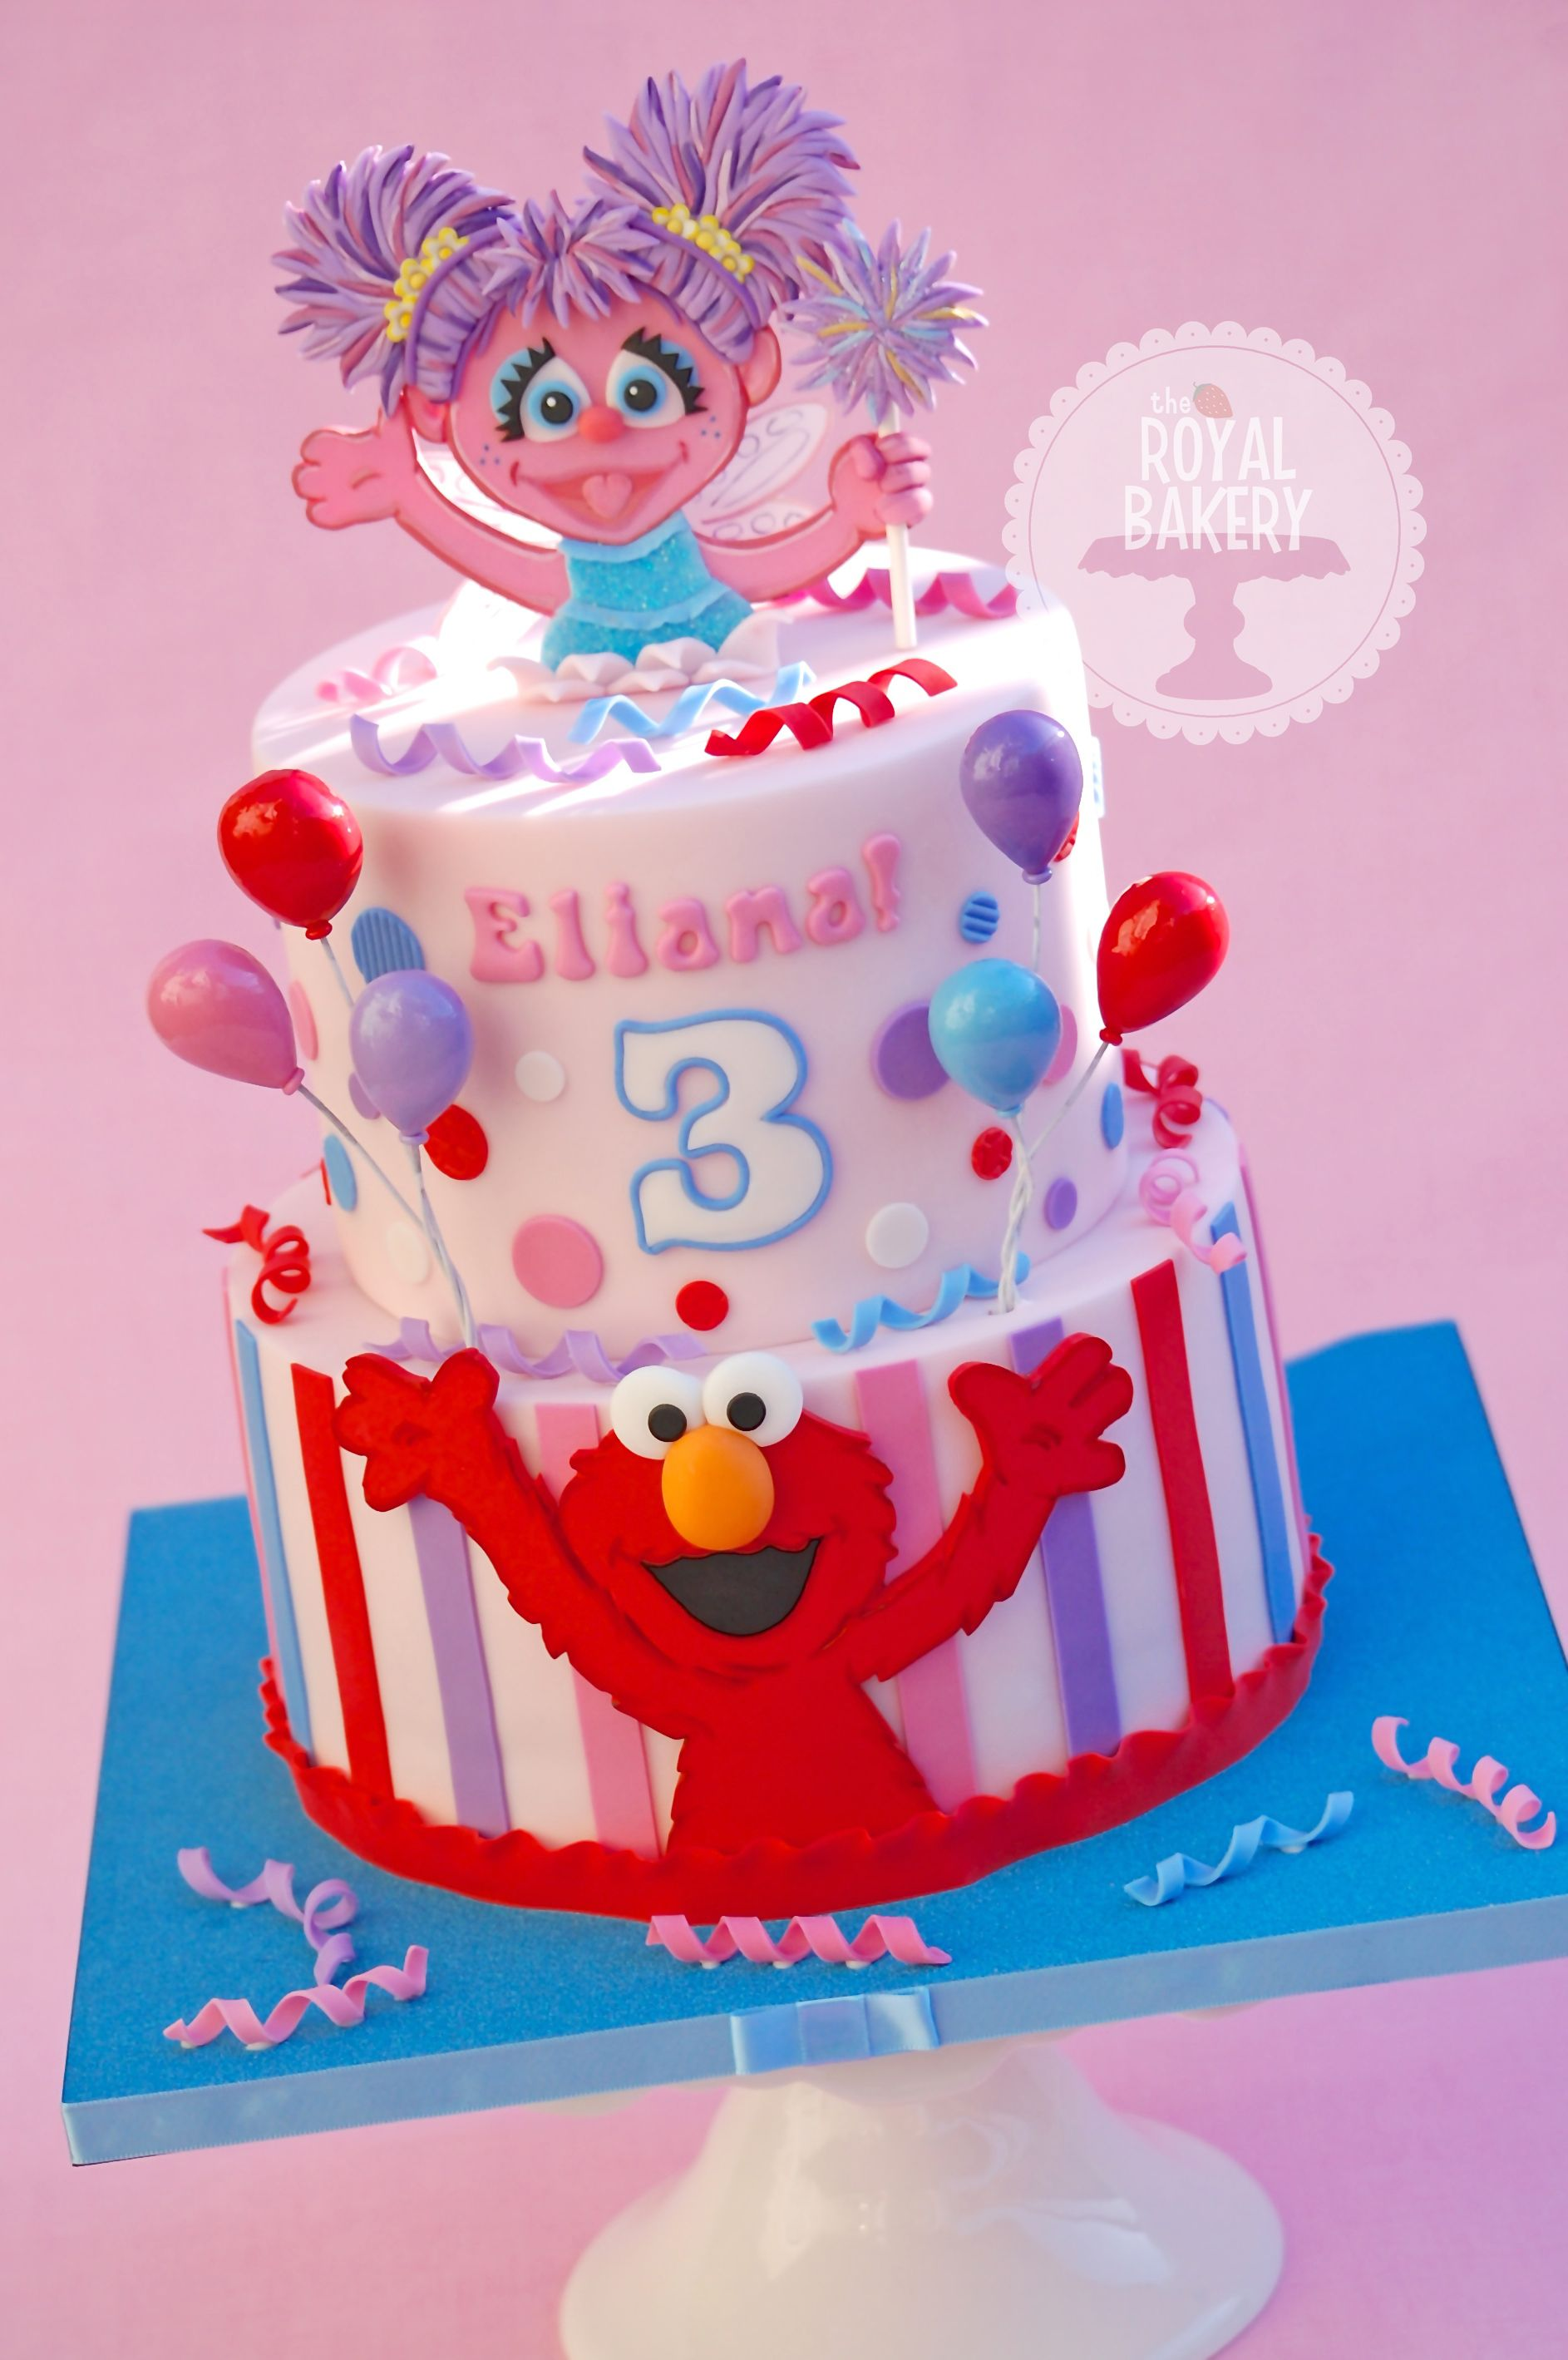 The Royal Bakery Abby Cadabby and Elmo cake for Eliana The